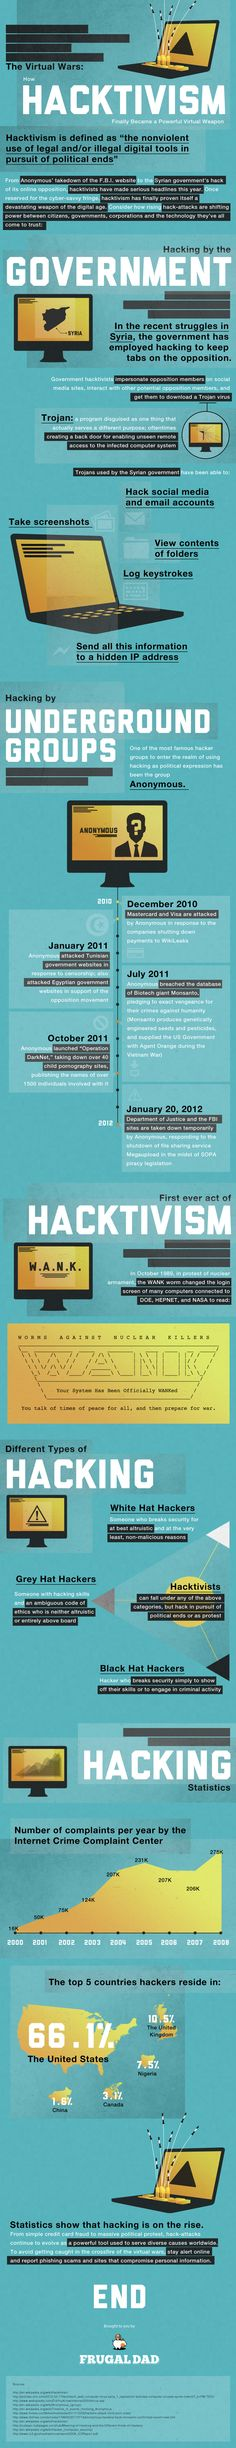 Will Hacktivism Play A Role In The Election? #infographic